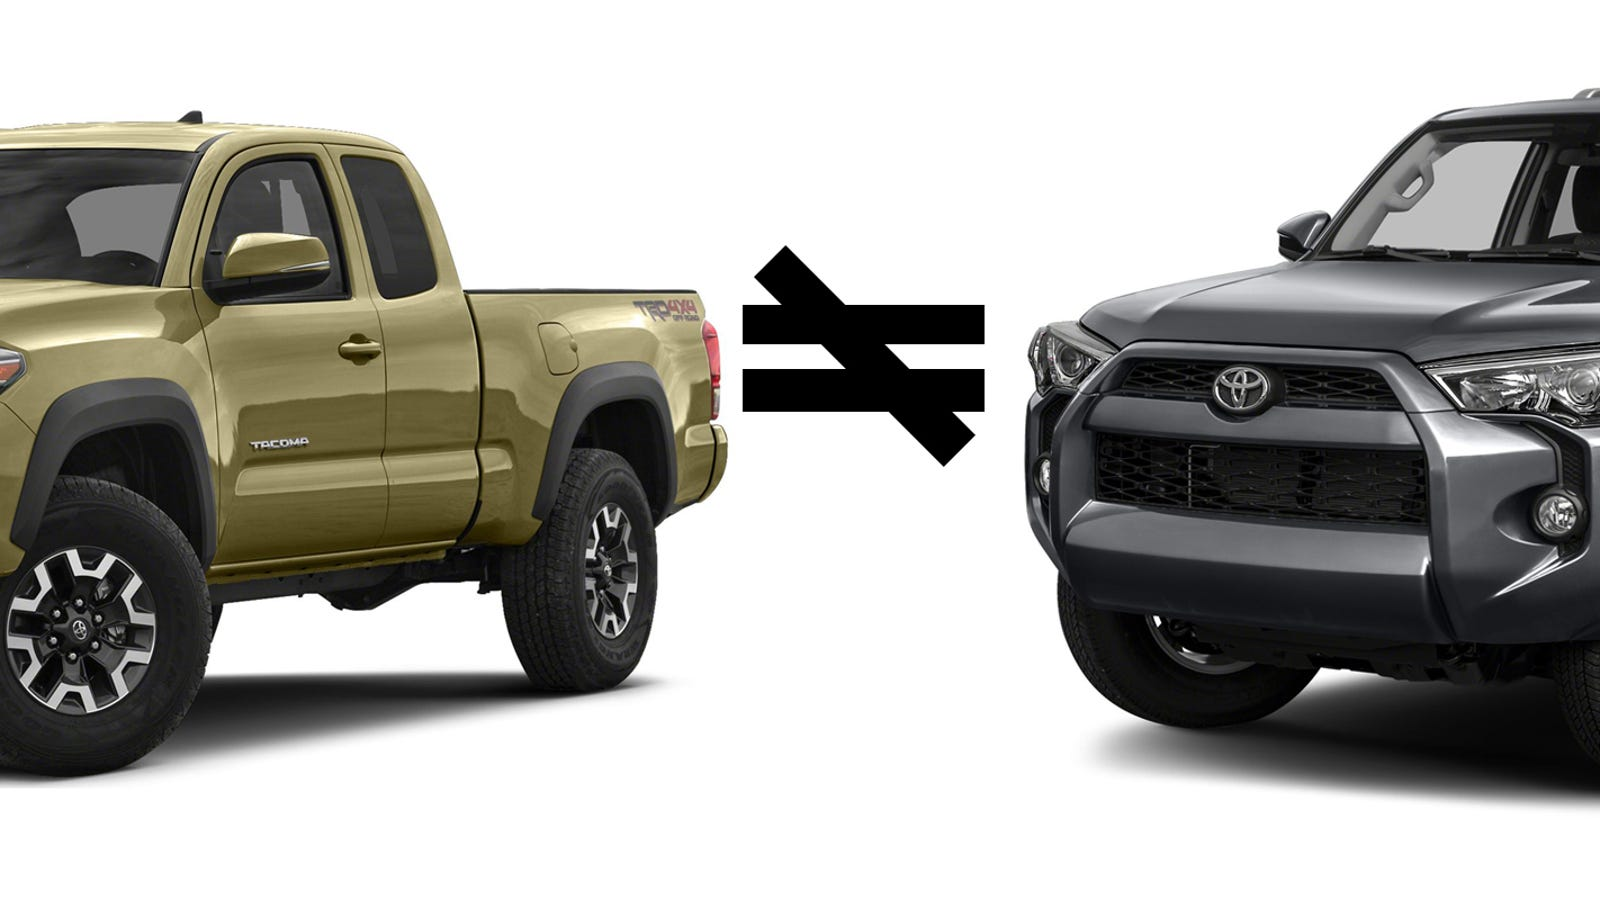 The Tacoma and the 4Runner - A Tale of 2 Trucks